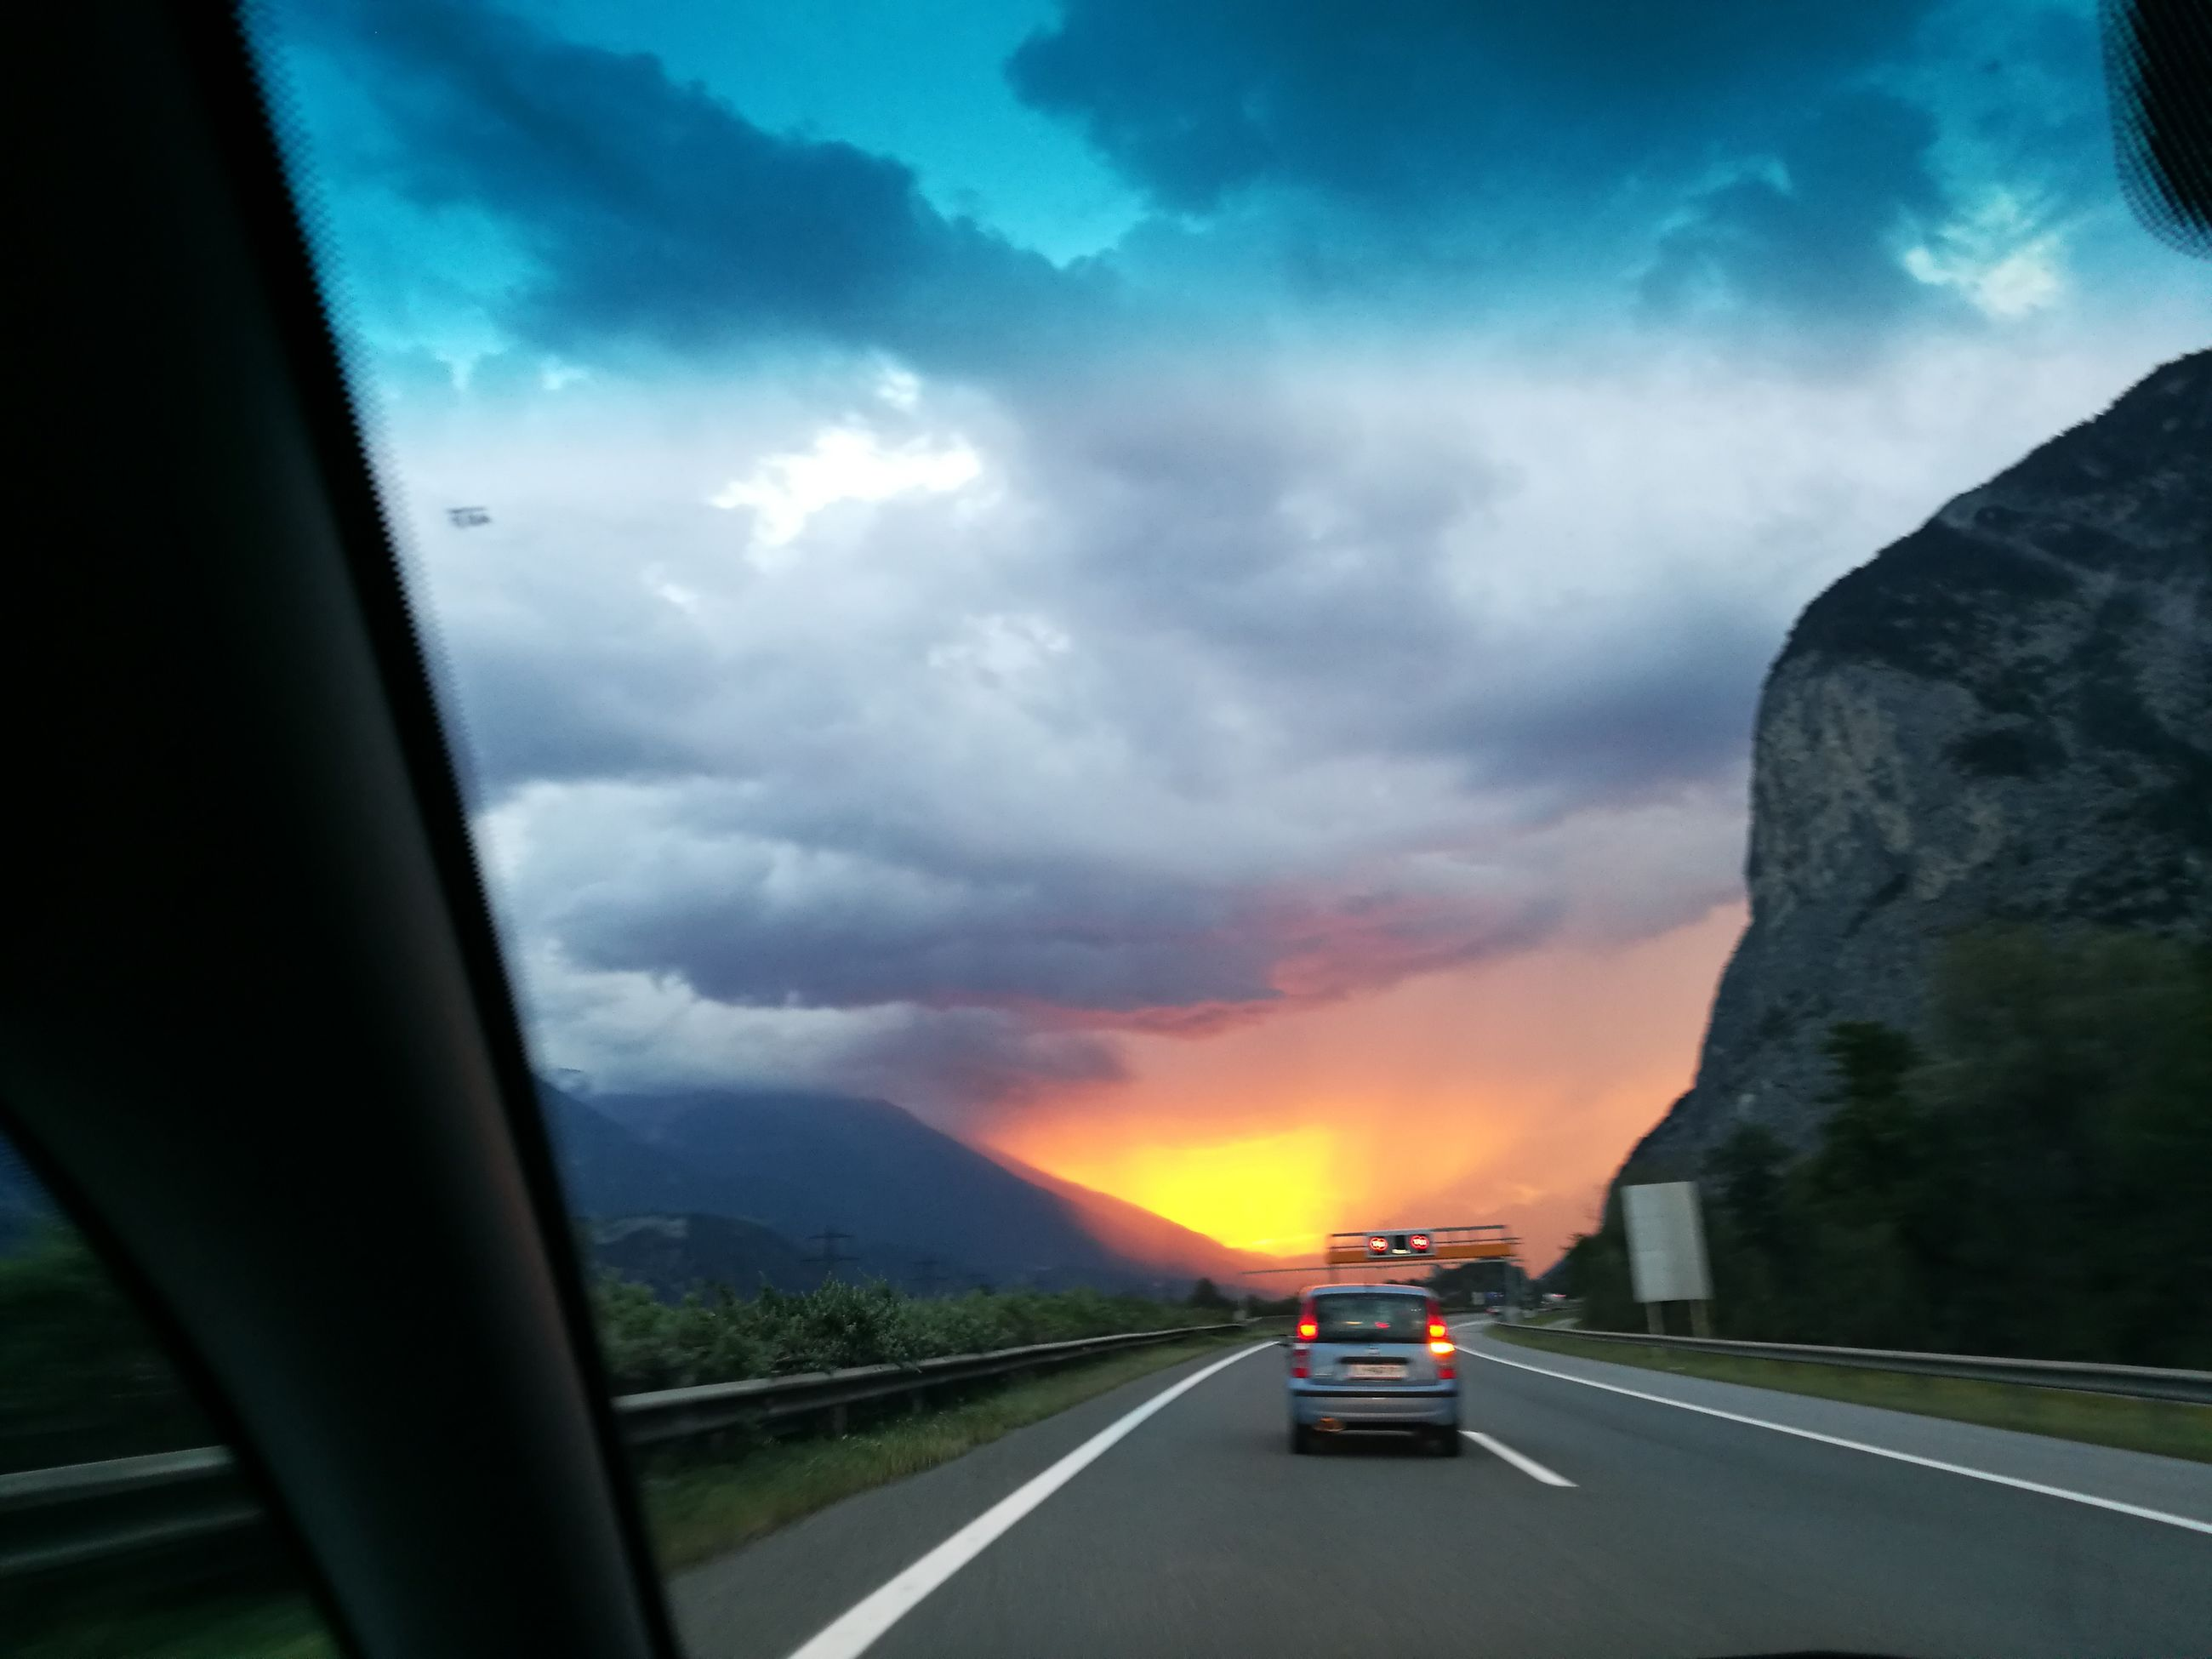 transportation, road, car, mode of transport, land vehicle, on the move, the way forward, road marking, journey, cloud - sky, travel, cloud, sky, orange color, road trip, blue, tail light, mountain, dramatic sky, vehicle, country road, vanishing point, dividing line, diminishing perspective, scenics, long, cloudy